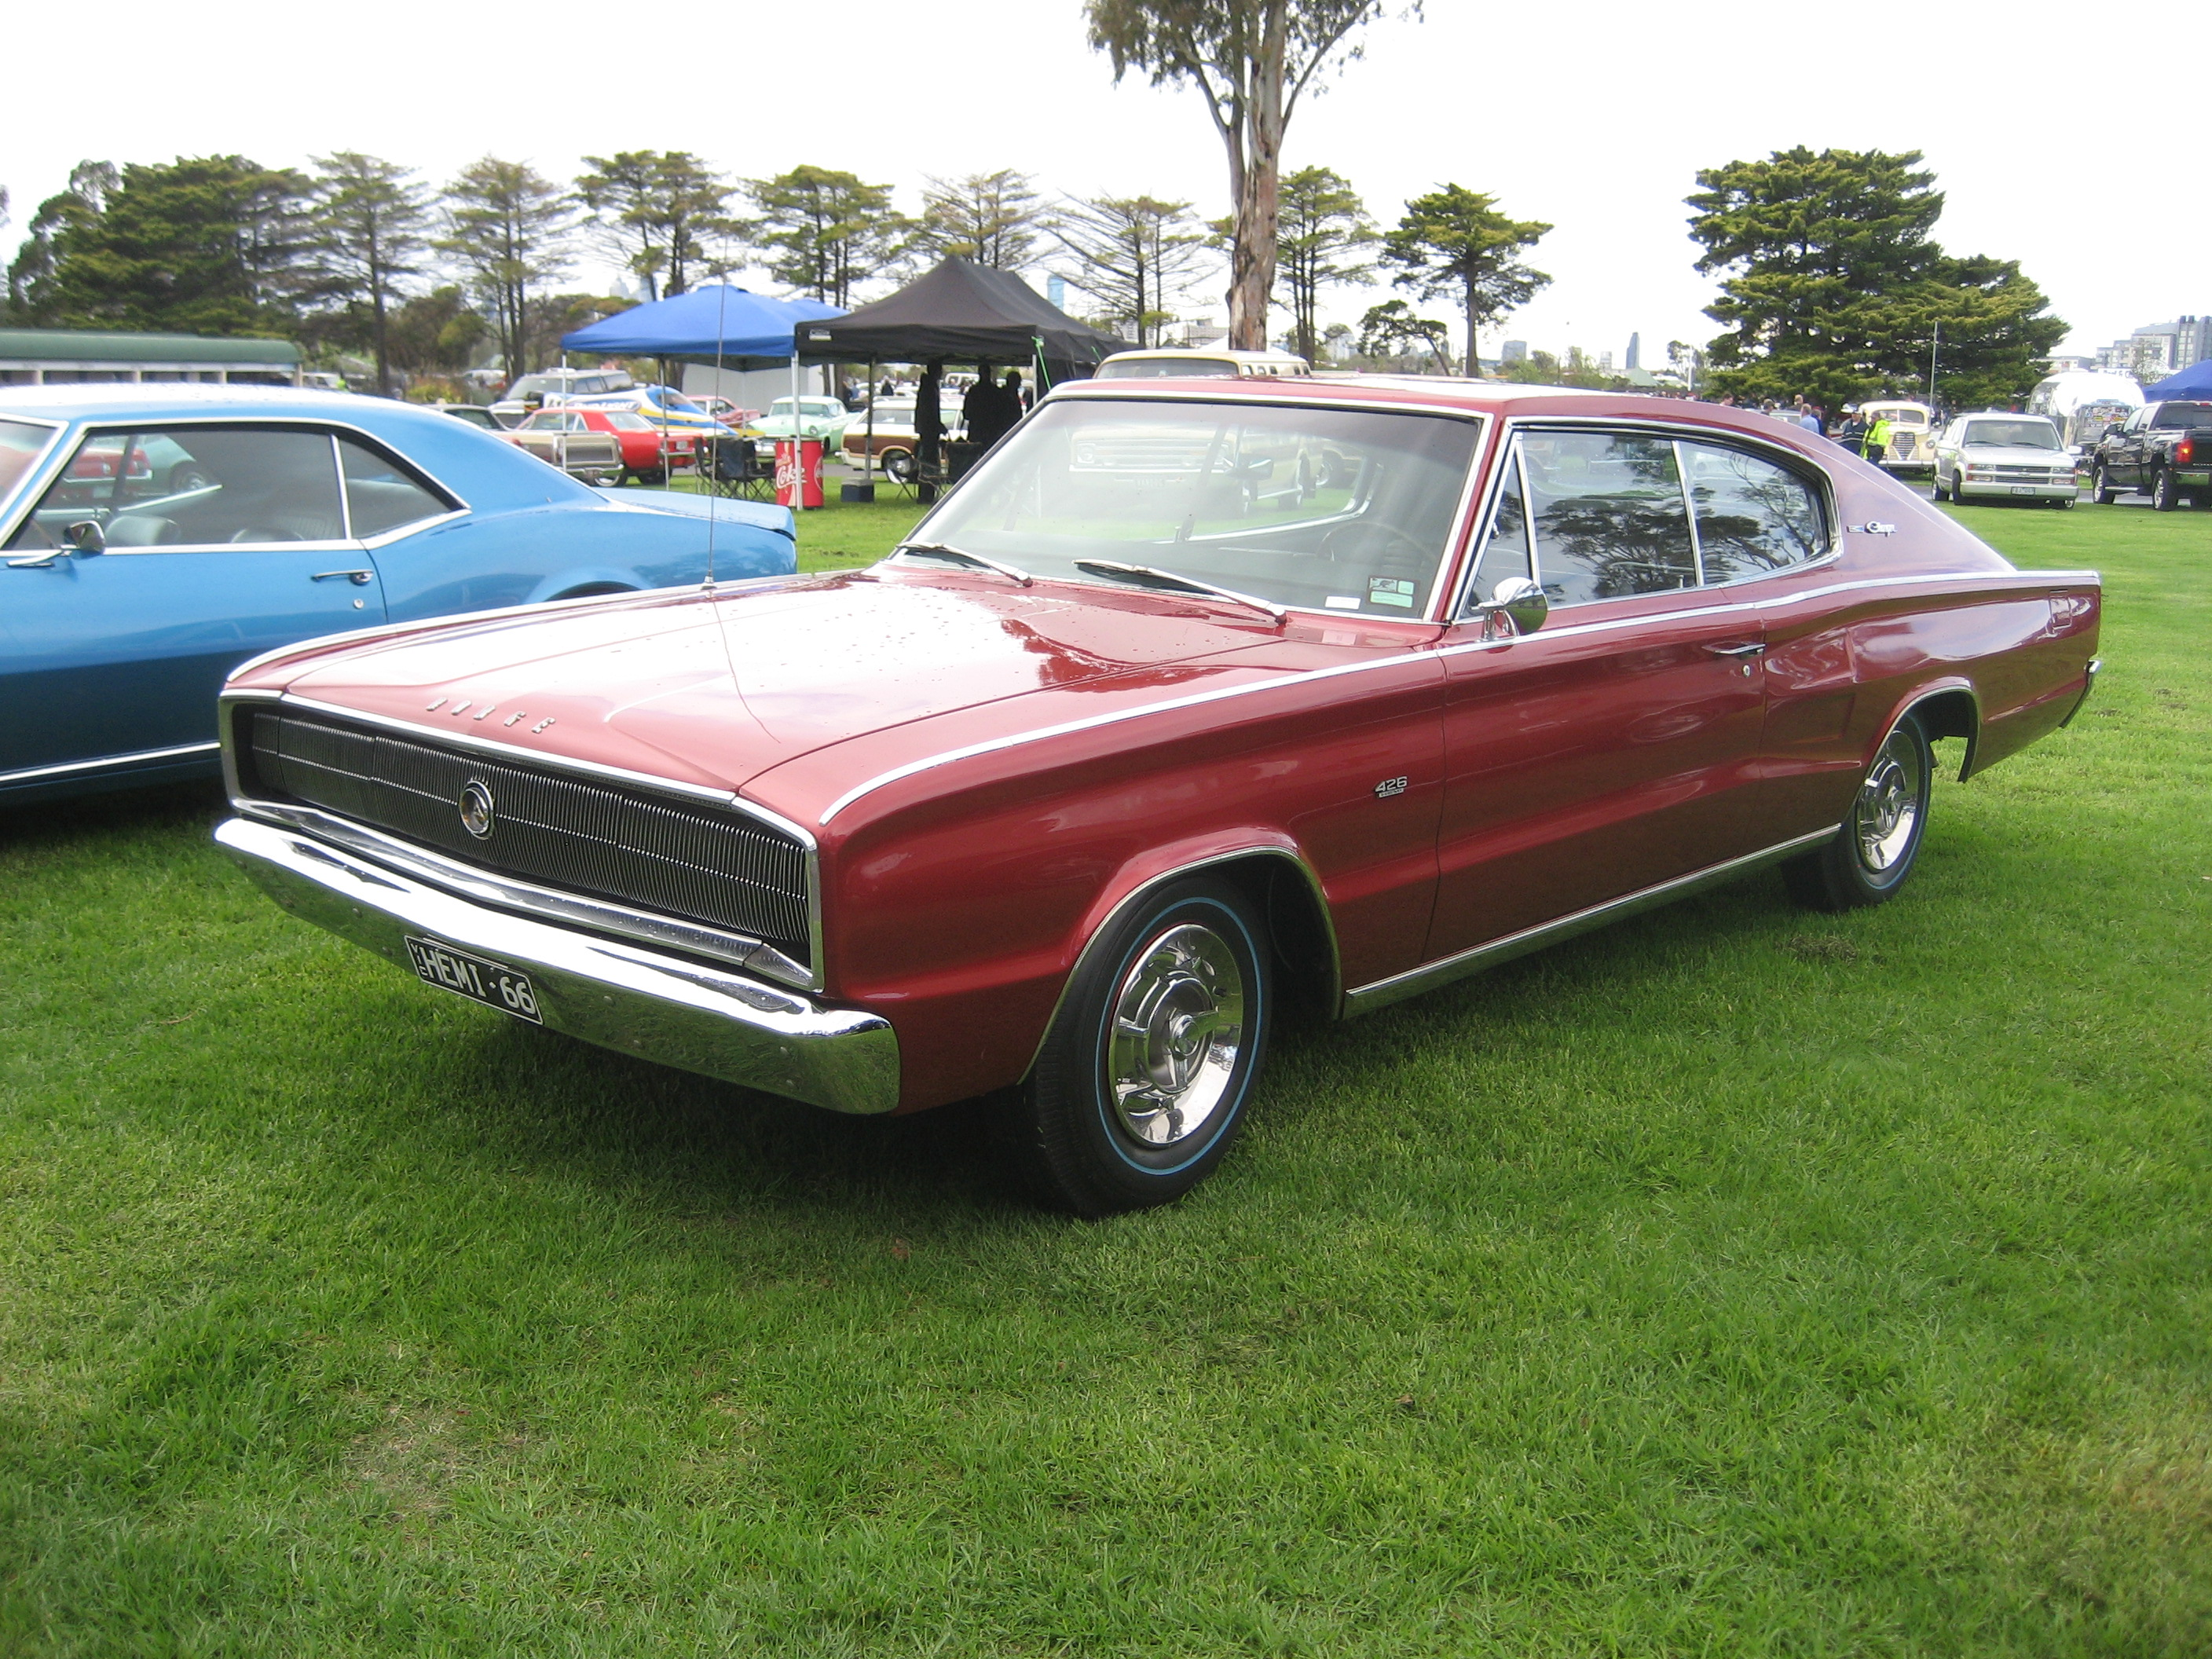 Dodge Charger (Wiki)